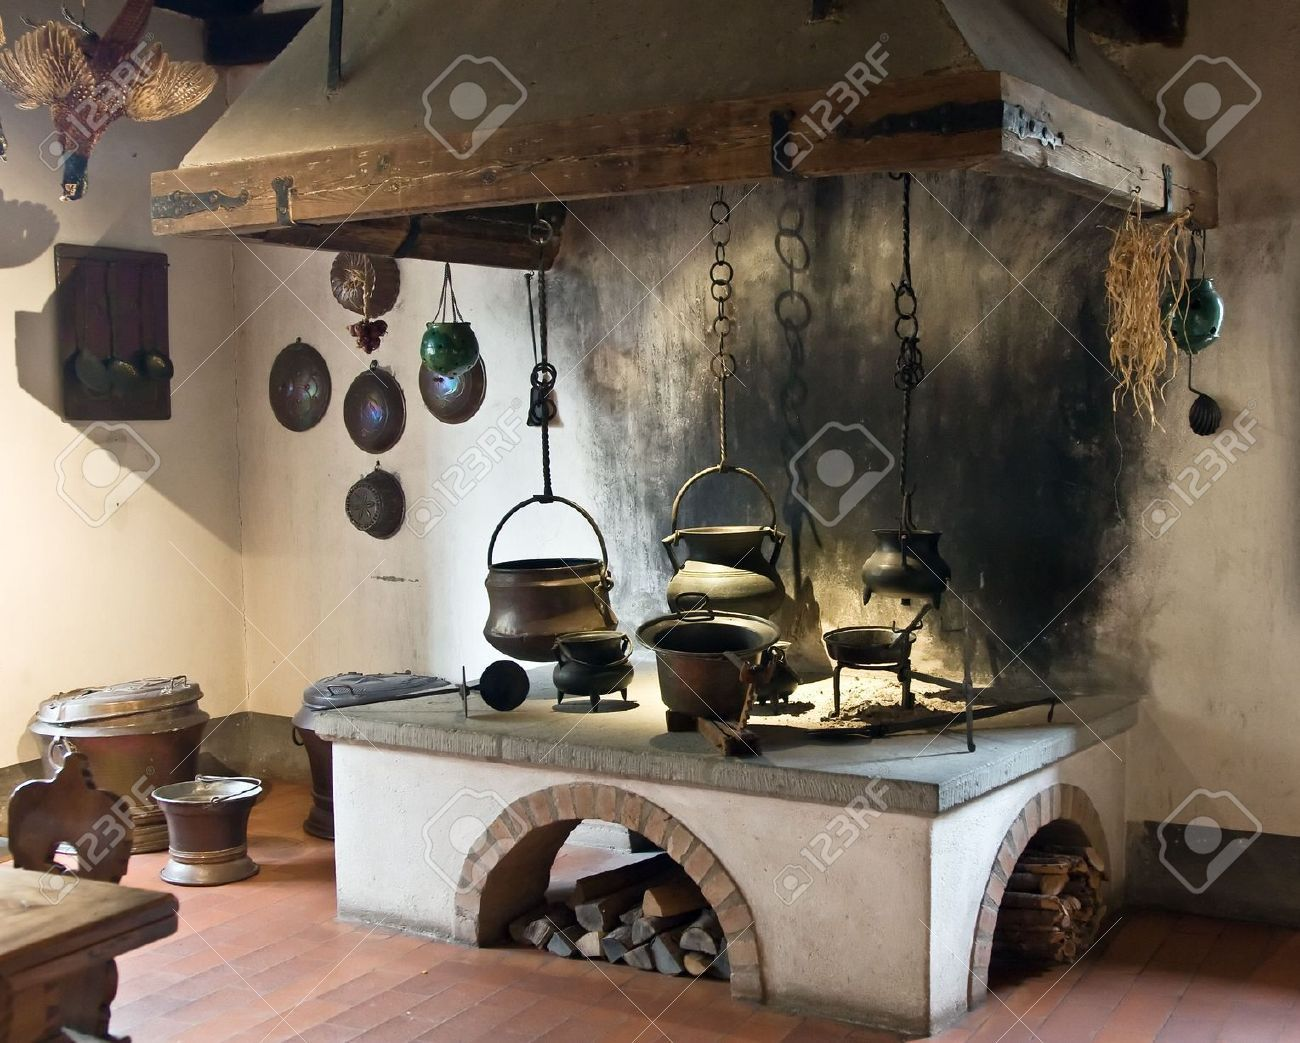 Old irish kitchens antigua cocina estilo medieval es - Decoraciones de cocina ...